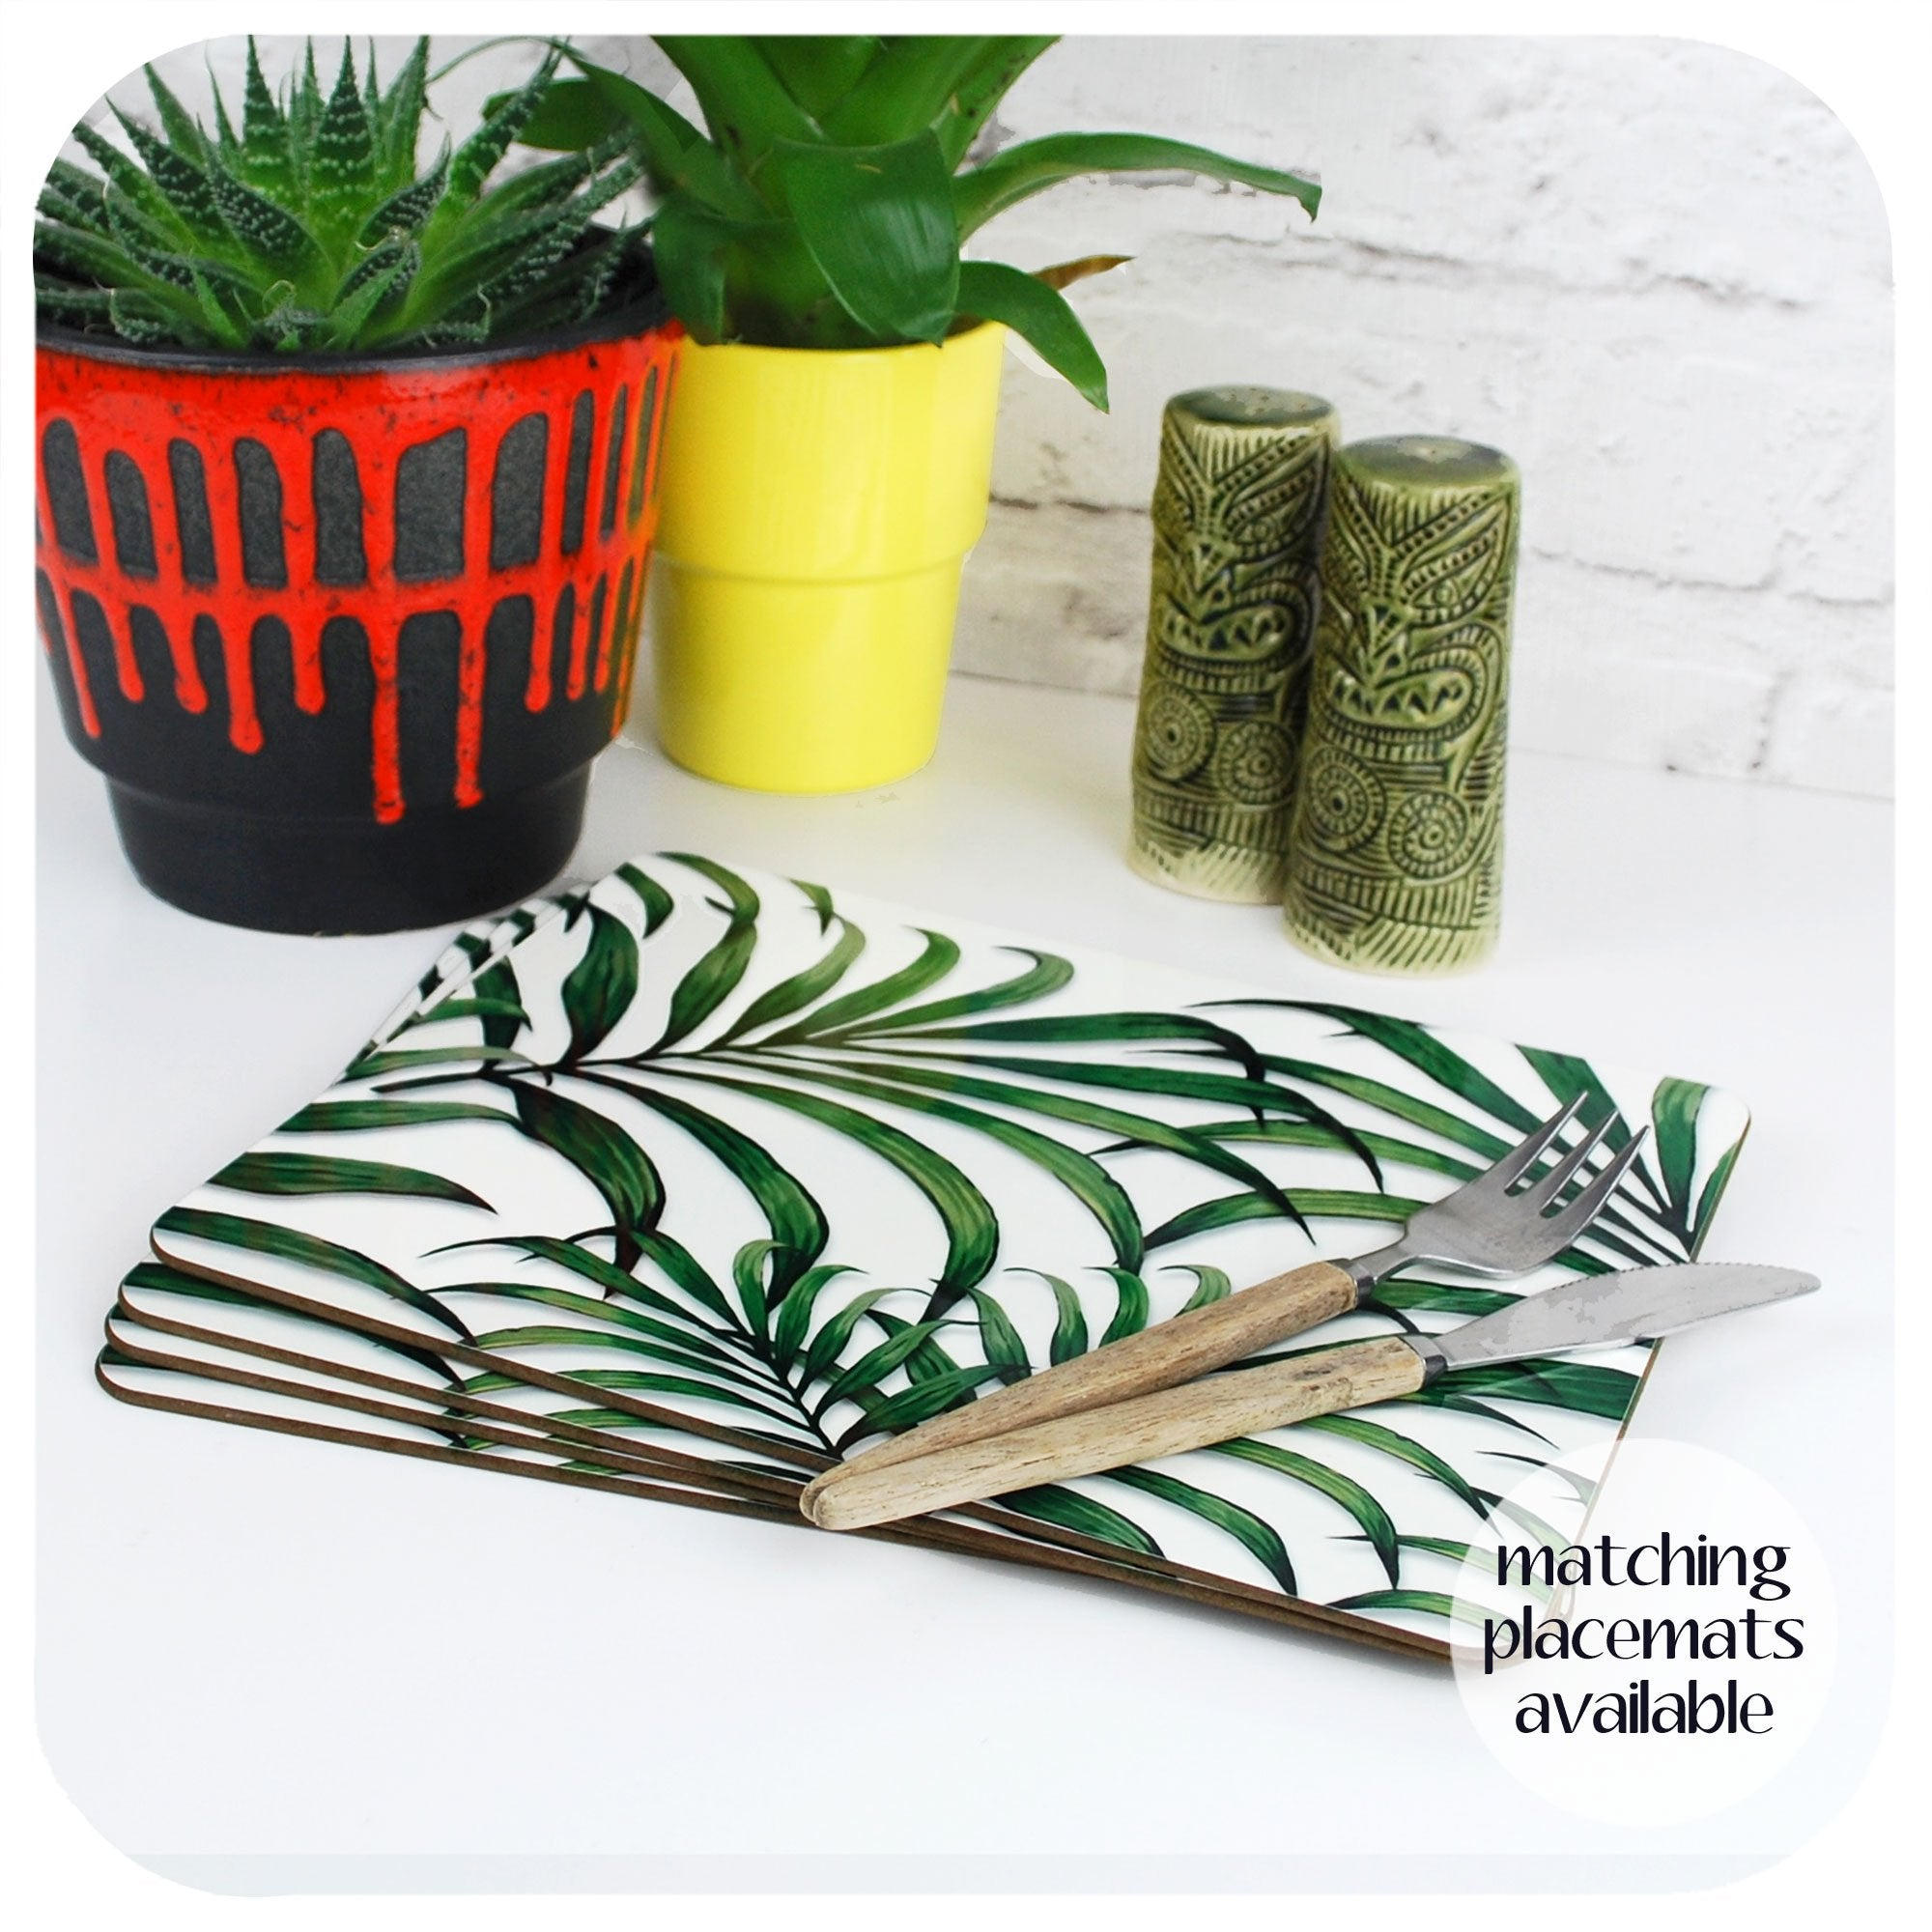 Palm Leaf Print Placemats on a table with plants and Tiki Cruet Set | The Inkabilly Emporium